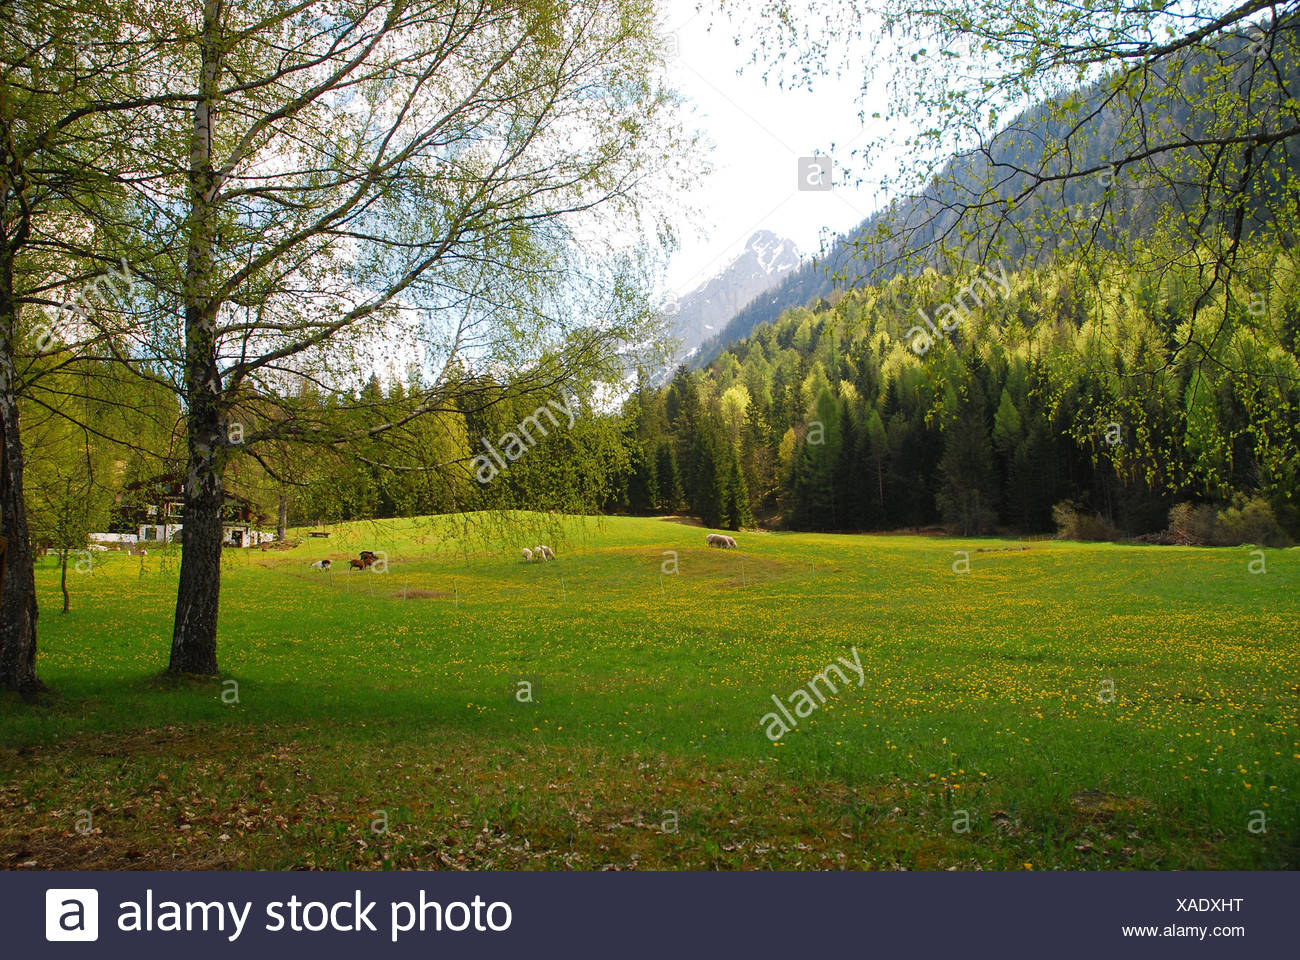 region mittenwald stockfotos region mittenwald bilder alamy. Black Bedroom Furniture Sets. Home Design Ideas